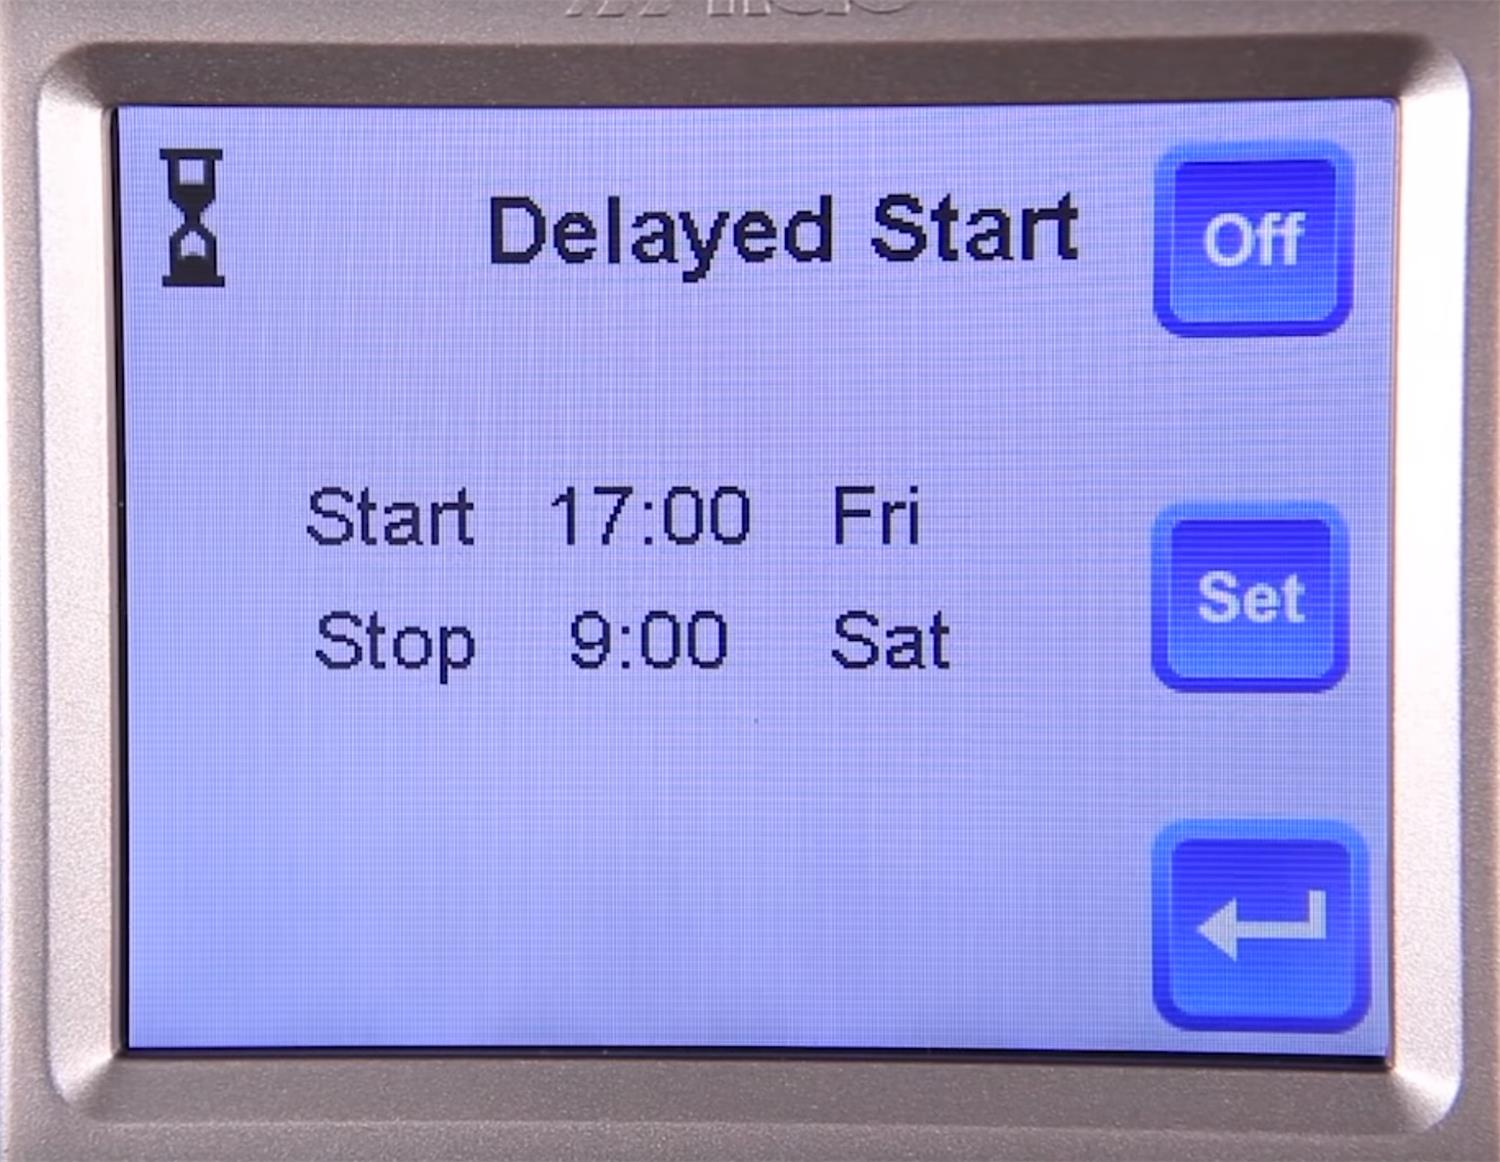 Alde 3020 Control panel on delayed start screen.